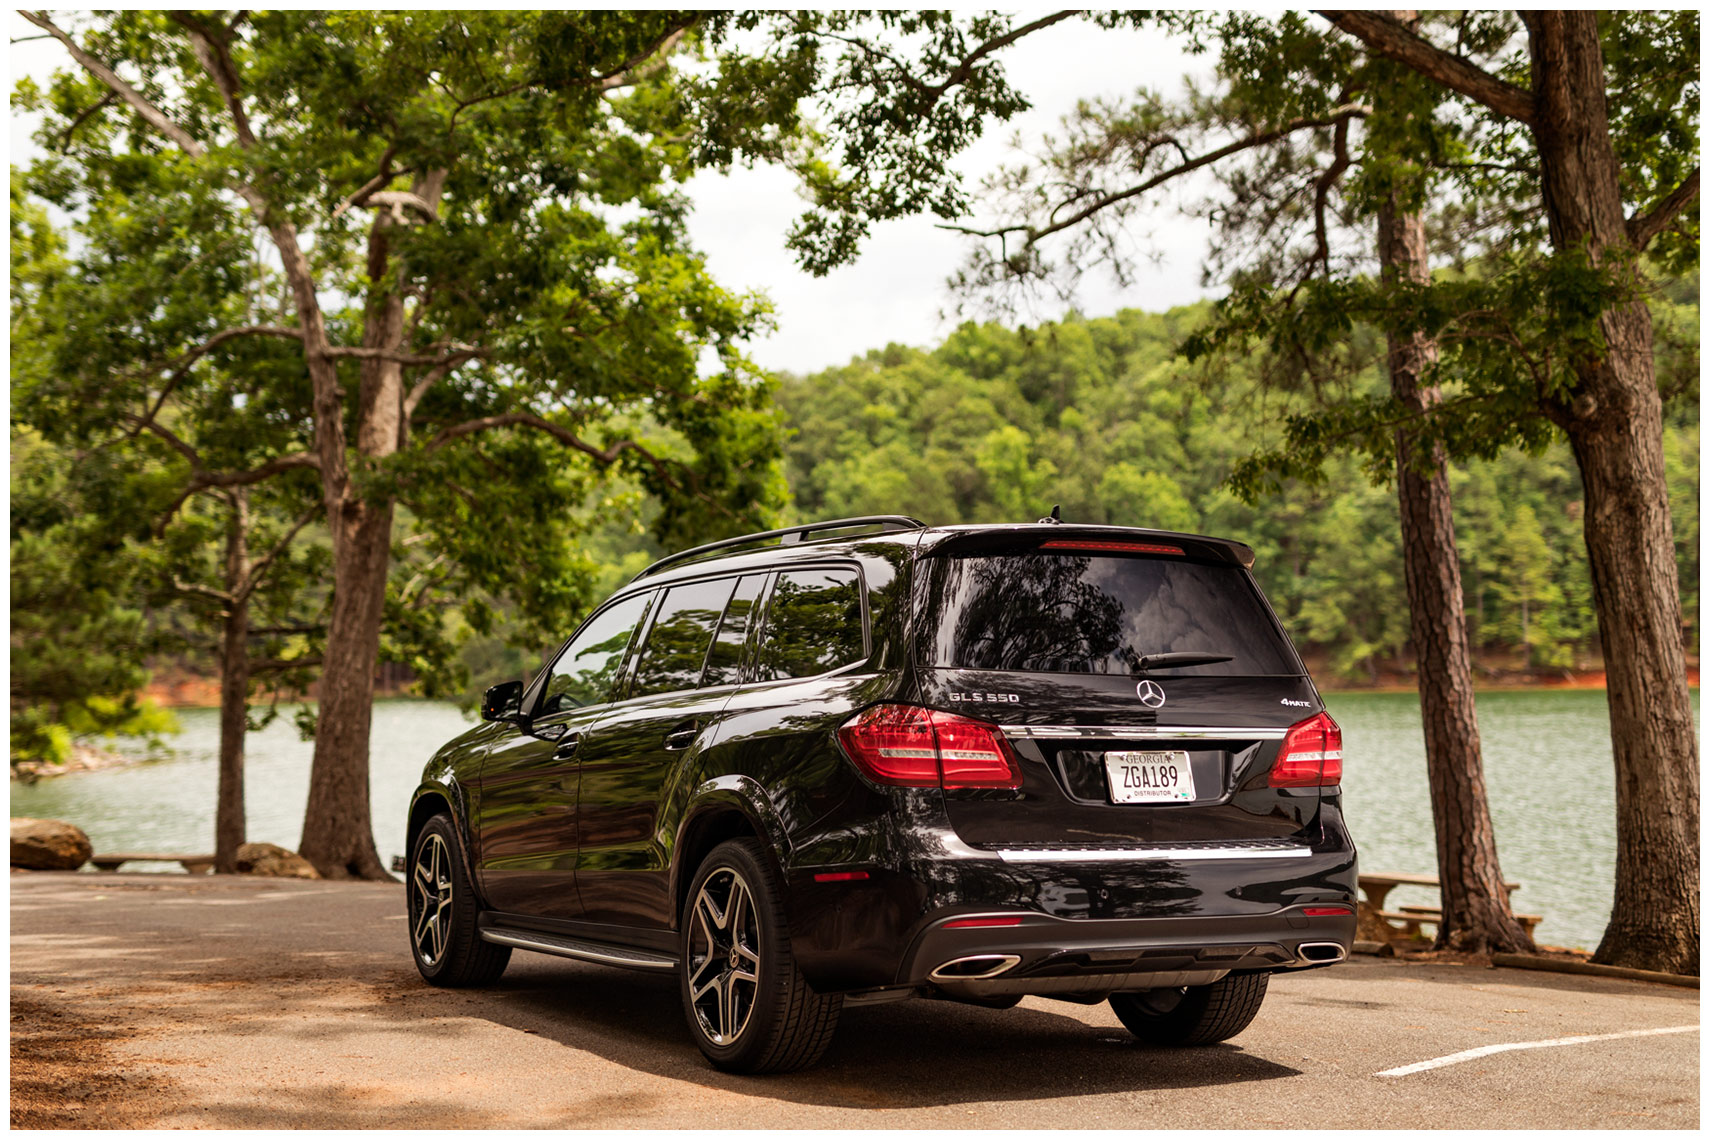 rear 3/4 view of the mercedes-benz gls 550 at red top mountain state park